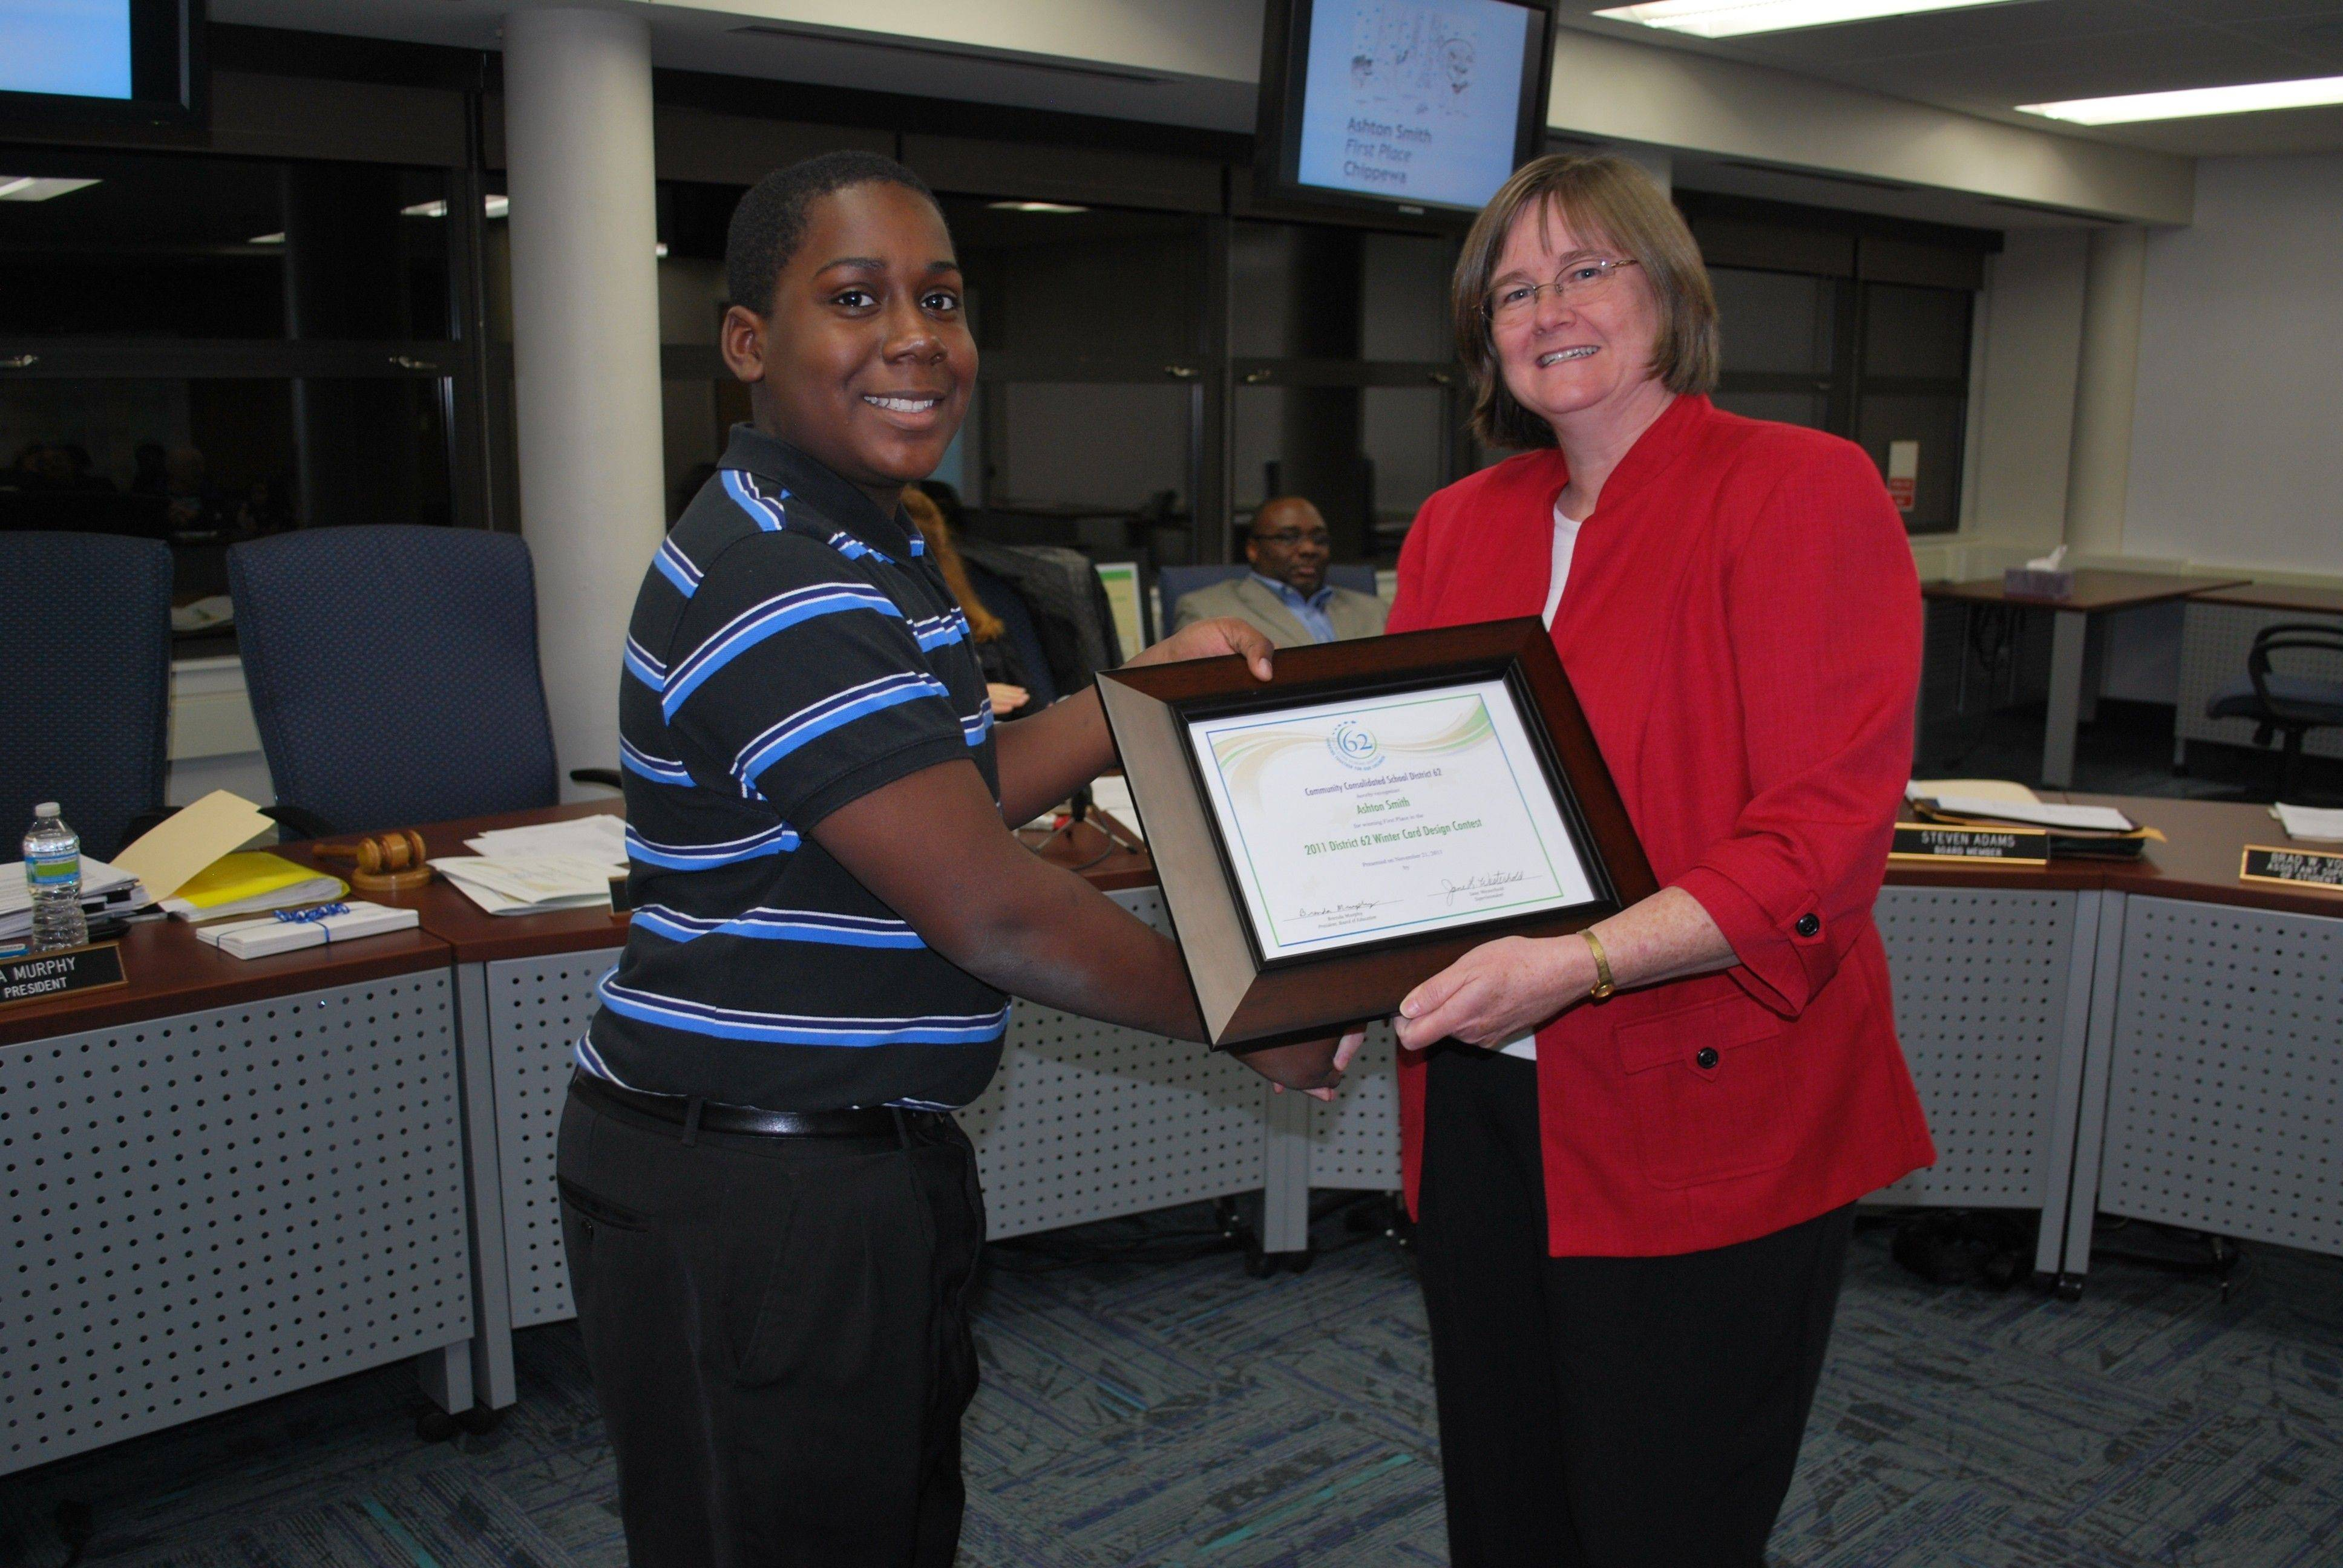 District 62 Winter Card Design Contest winner Ashton Smith accepts a Certificate of Recognition from board President Brenda Murphy.